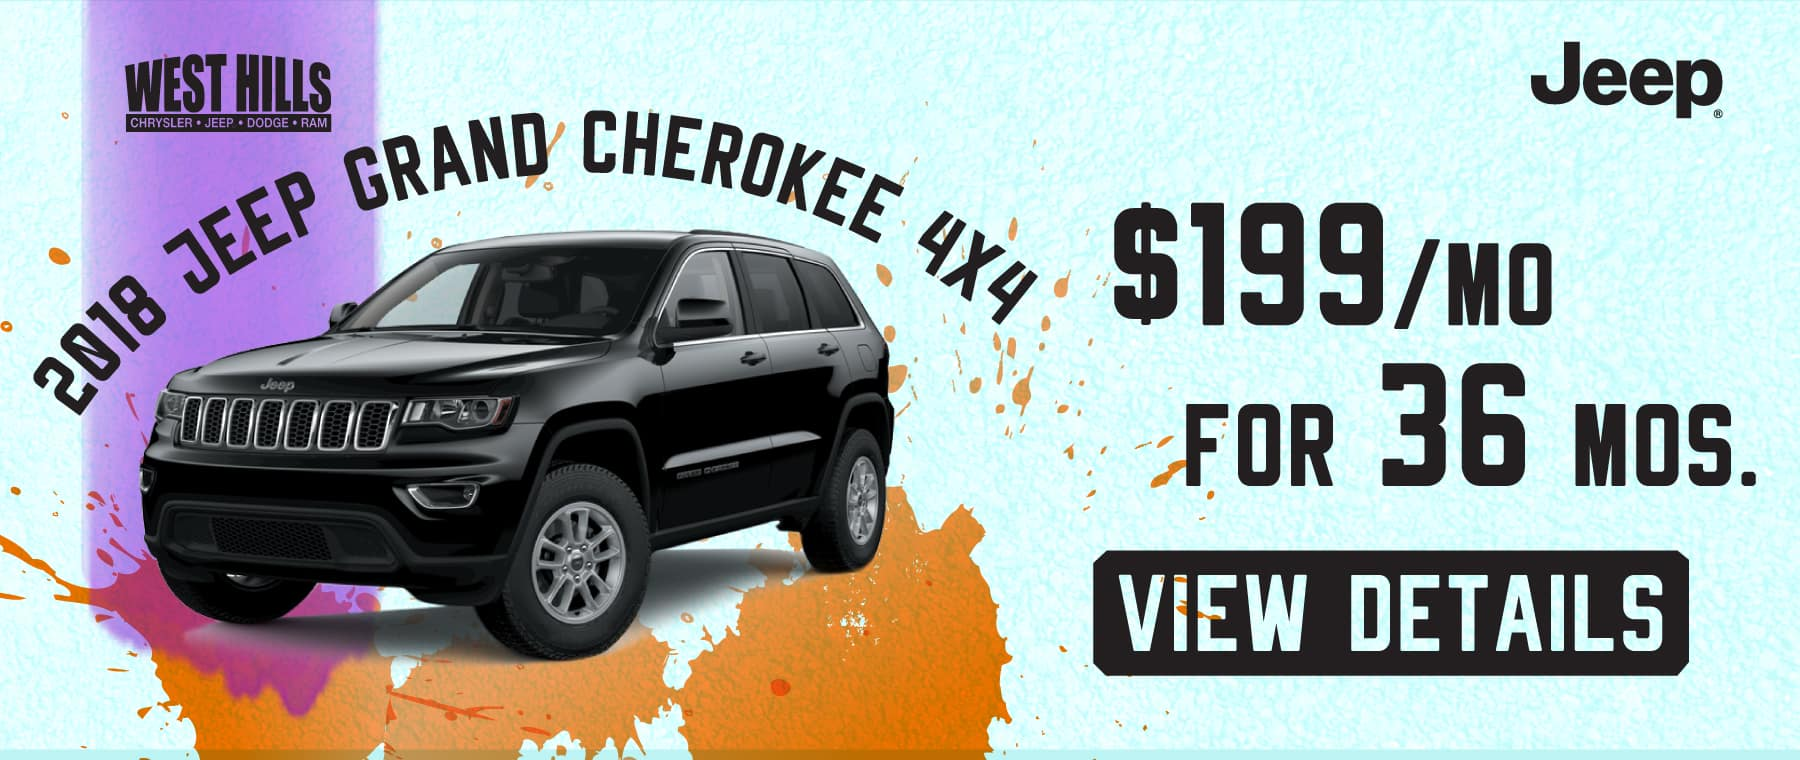 2018 Jeep Grand Cherokee 4 X 4  $199/mo. For 36 mos.*